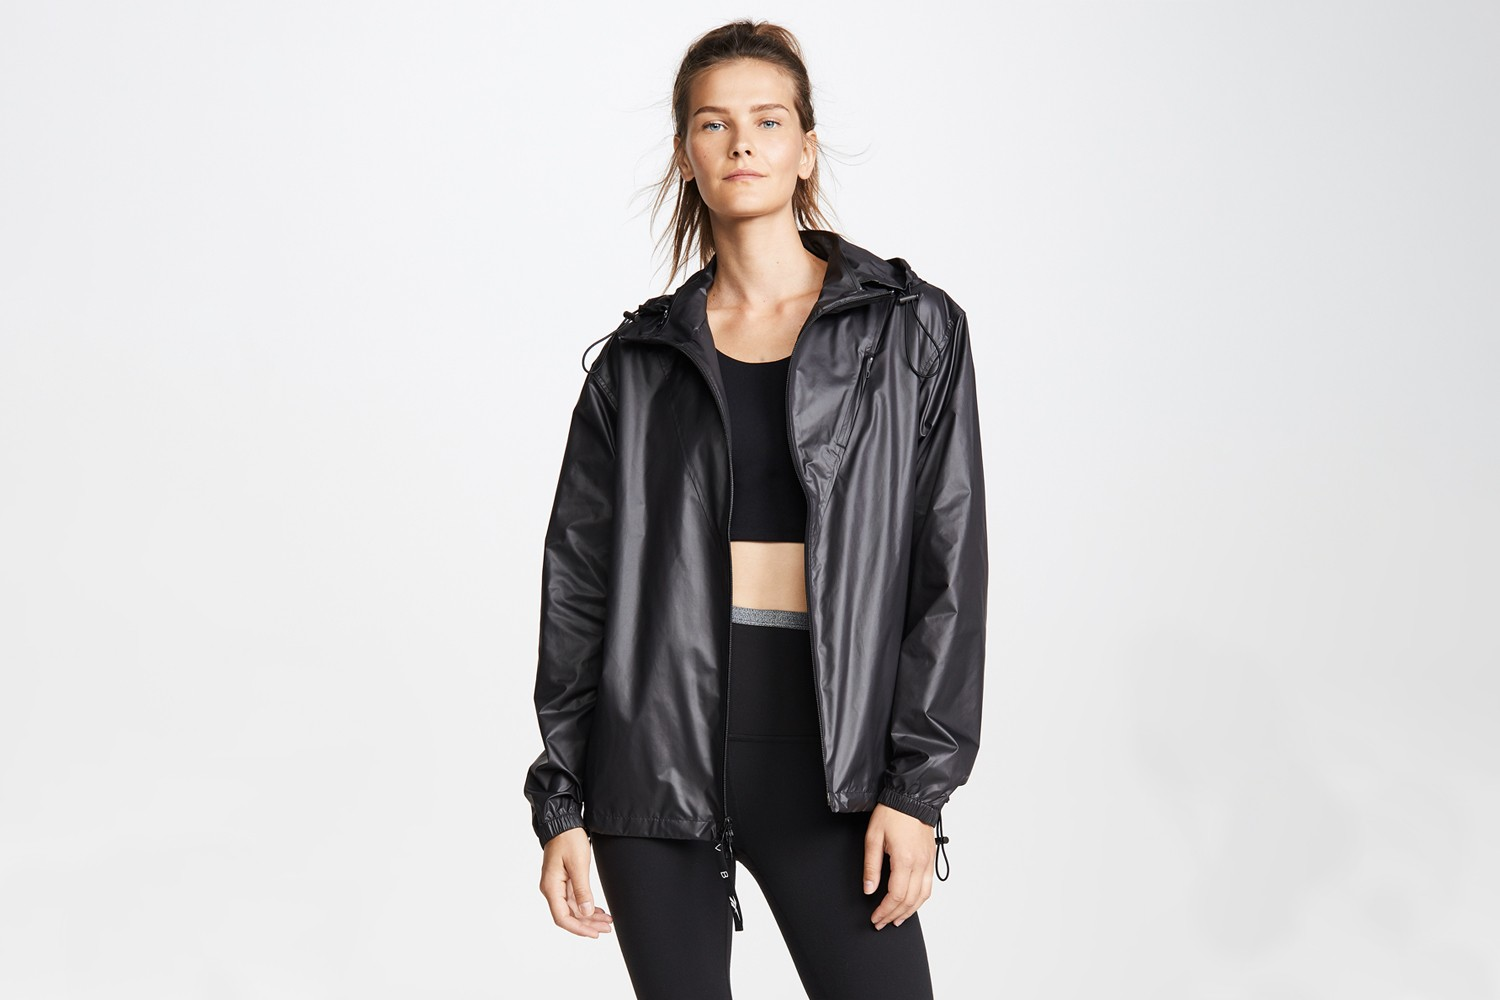 best windbreakers womens affordable jackets fall winter nike adidas reebok victoria beckham new balance